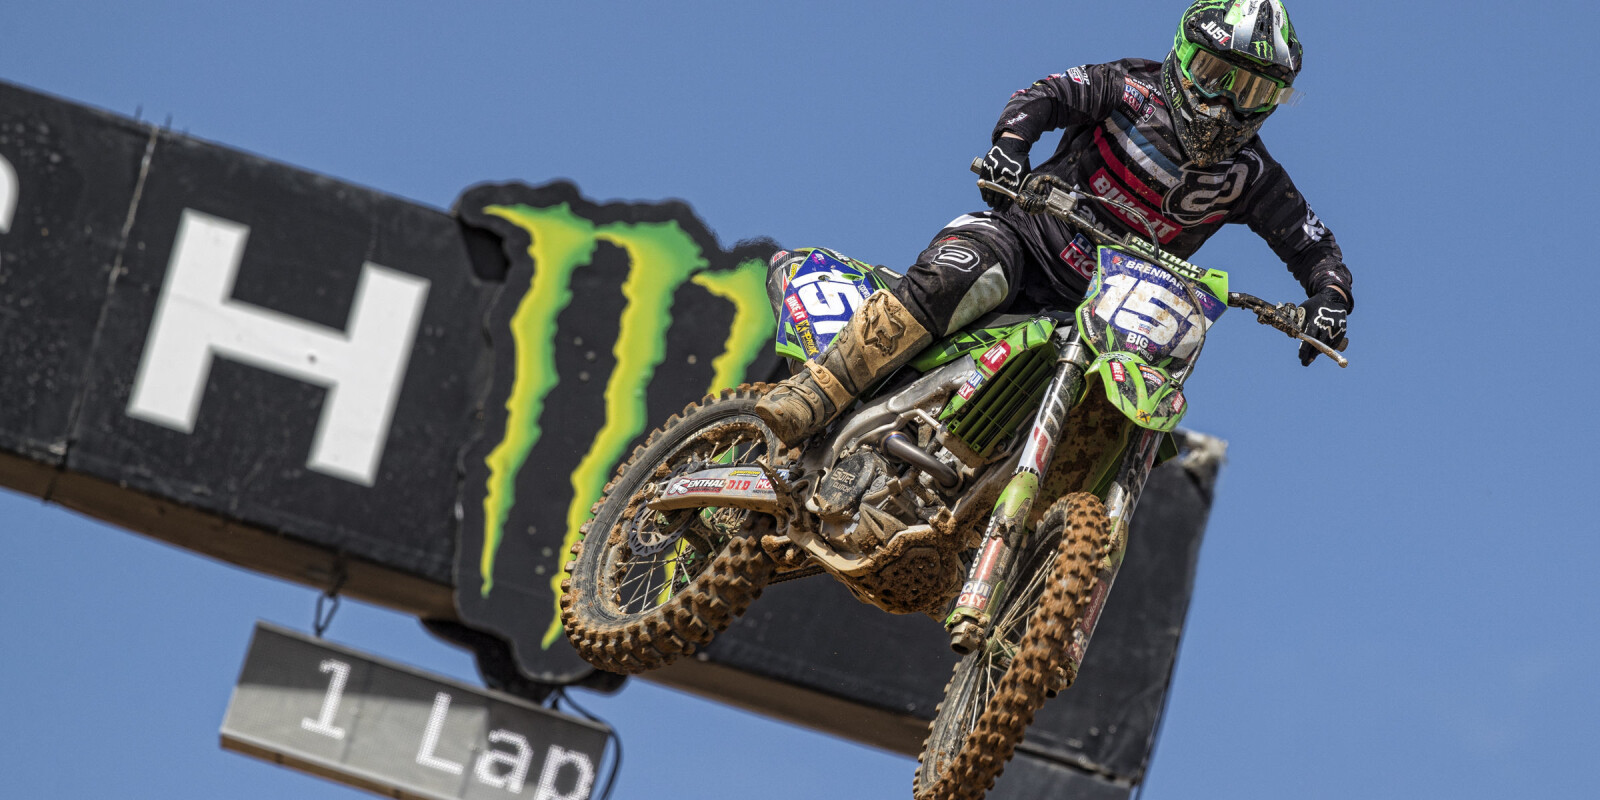 Shots from MXGP in Agueda, Portugal